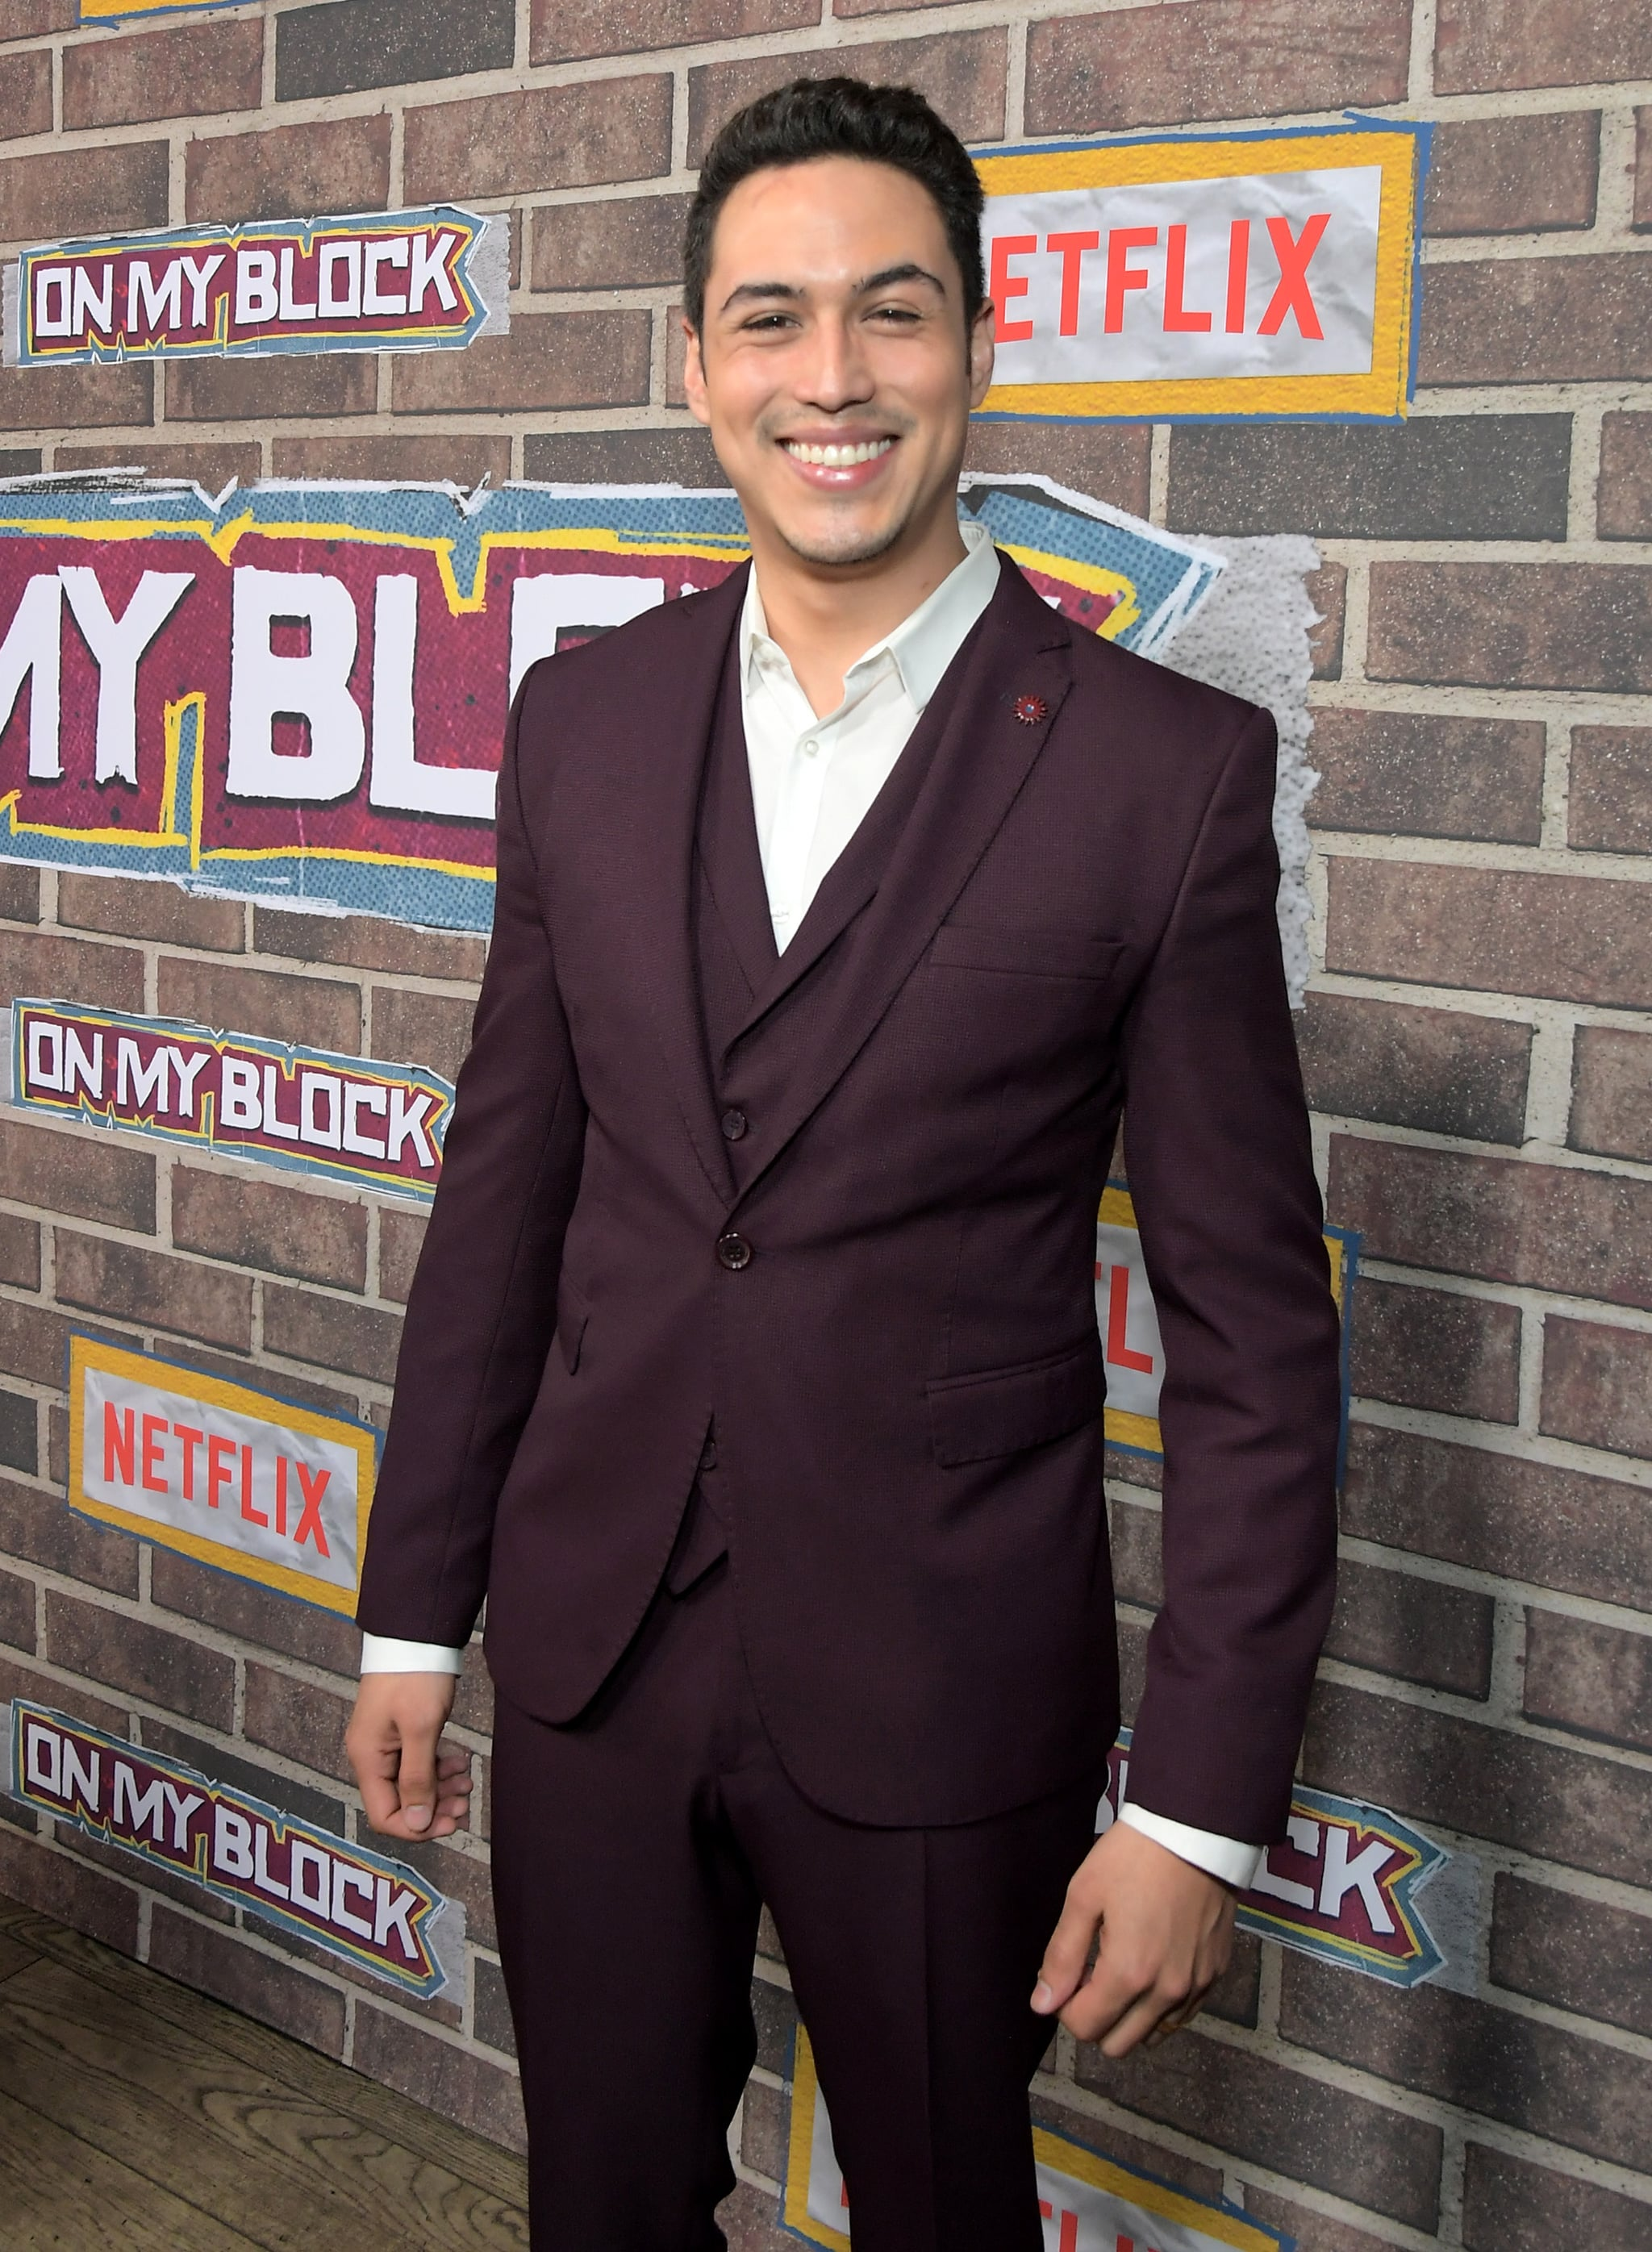 LOS ANGELES, CALIFORNIA - MARCH 27: Julio Macias attends the 'On My Block' S2 Launch Event at Petty Cash Taqueria on March 27, 2019 in Los Angeles, California. (Photo by Charley Gallay/Getty Images for Netflix)